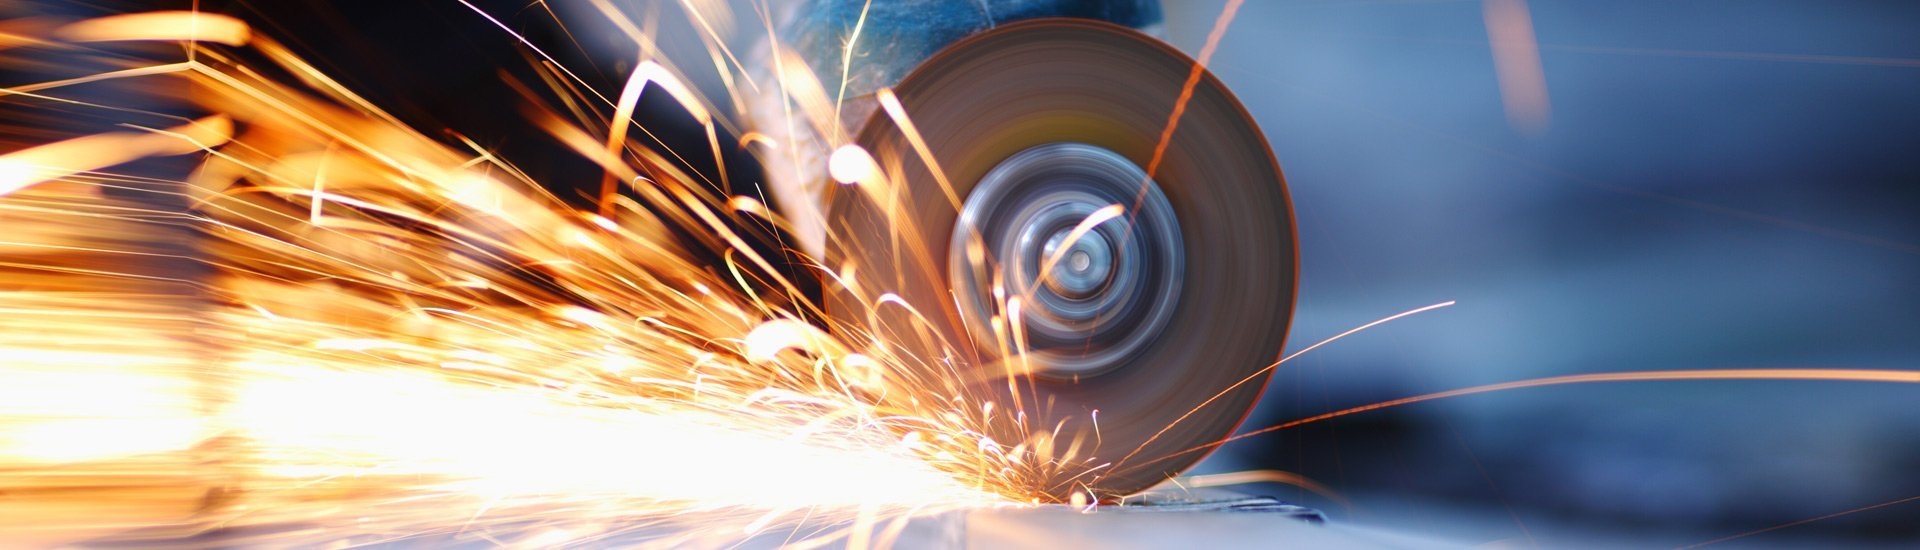 Abrasive wheels training services